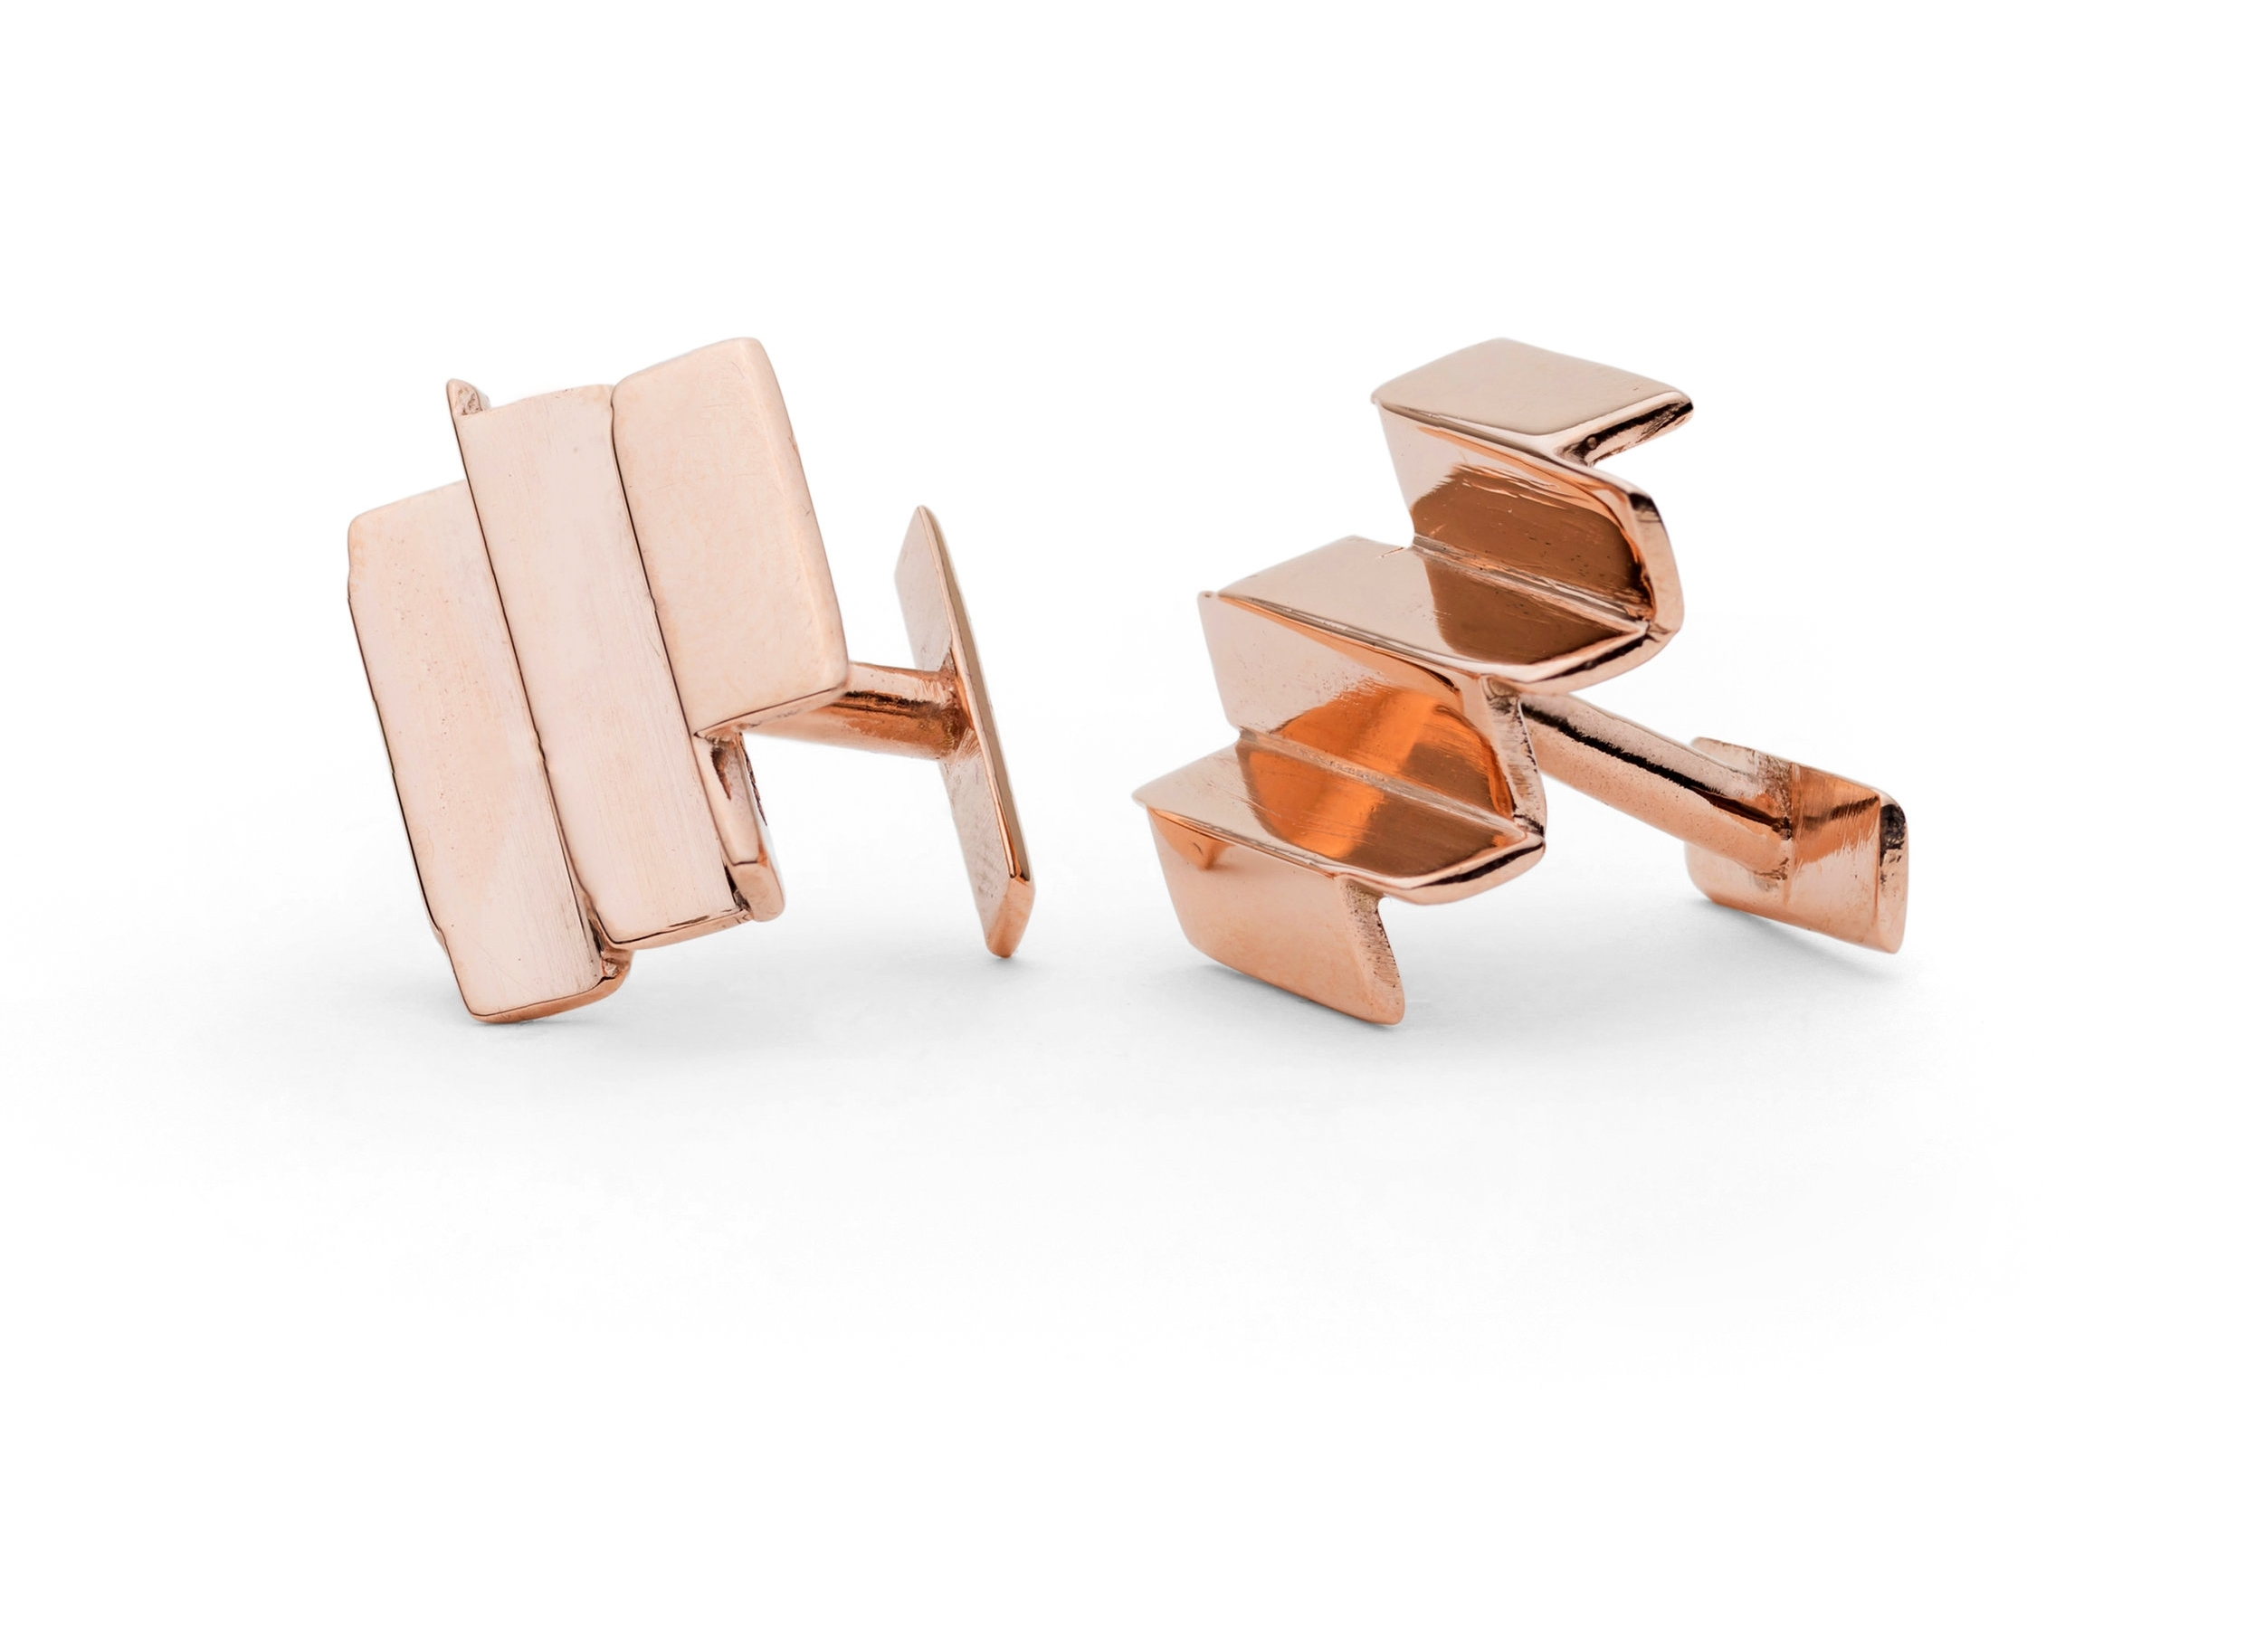 Ifeanyi Oganwu, Cityscapes , 2016. 9kt rose gold cuff links. Edition of 12. Courtesy Expand Design Ltd.and Elisabetta Cipriani.